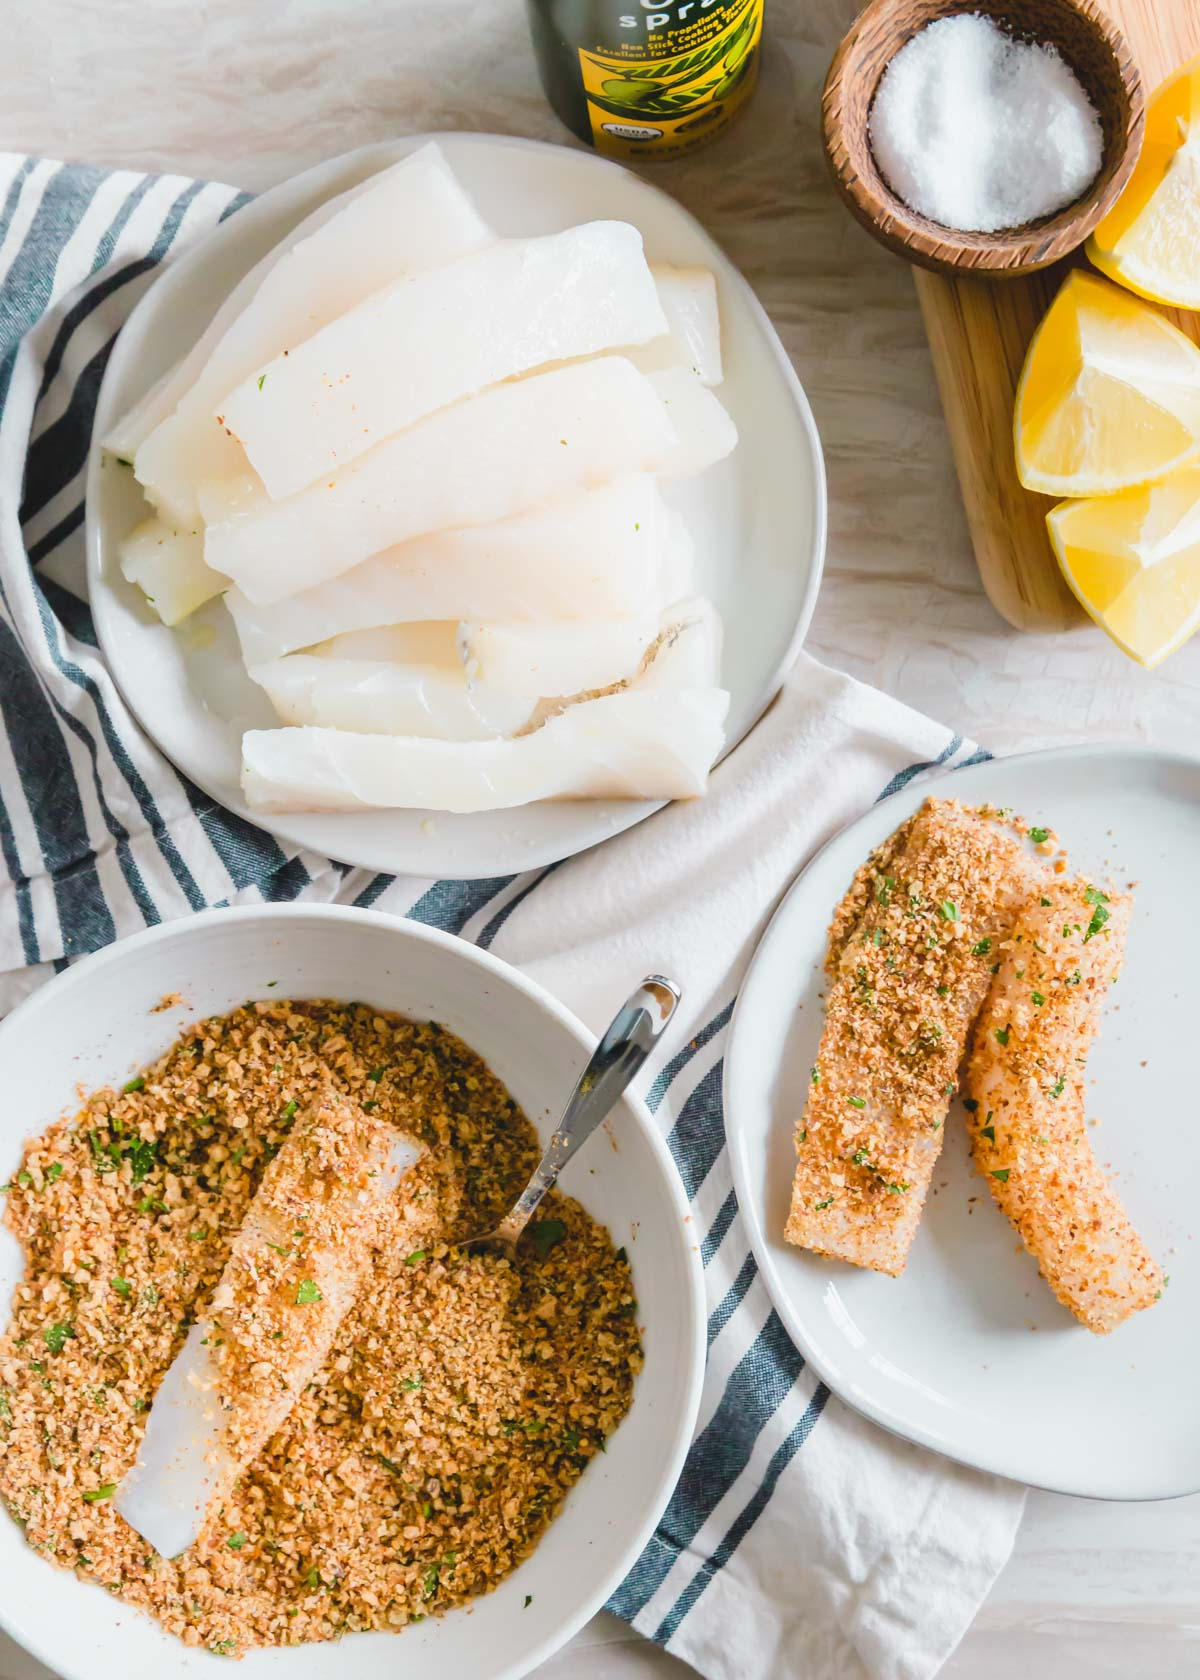 Fresh wild cod is coated in a breadcrumb mixture to make these air fryer fish sticks.